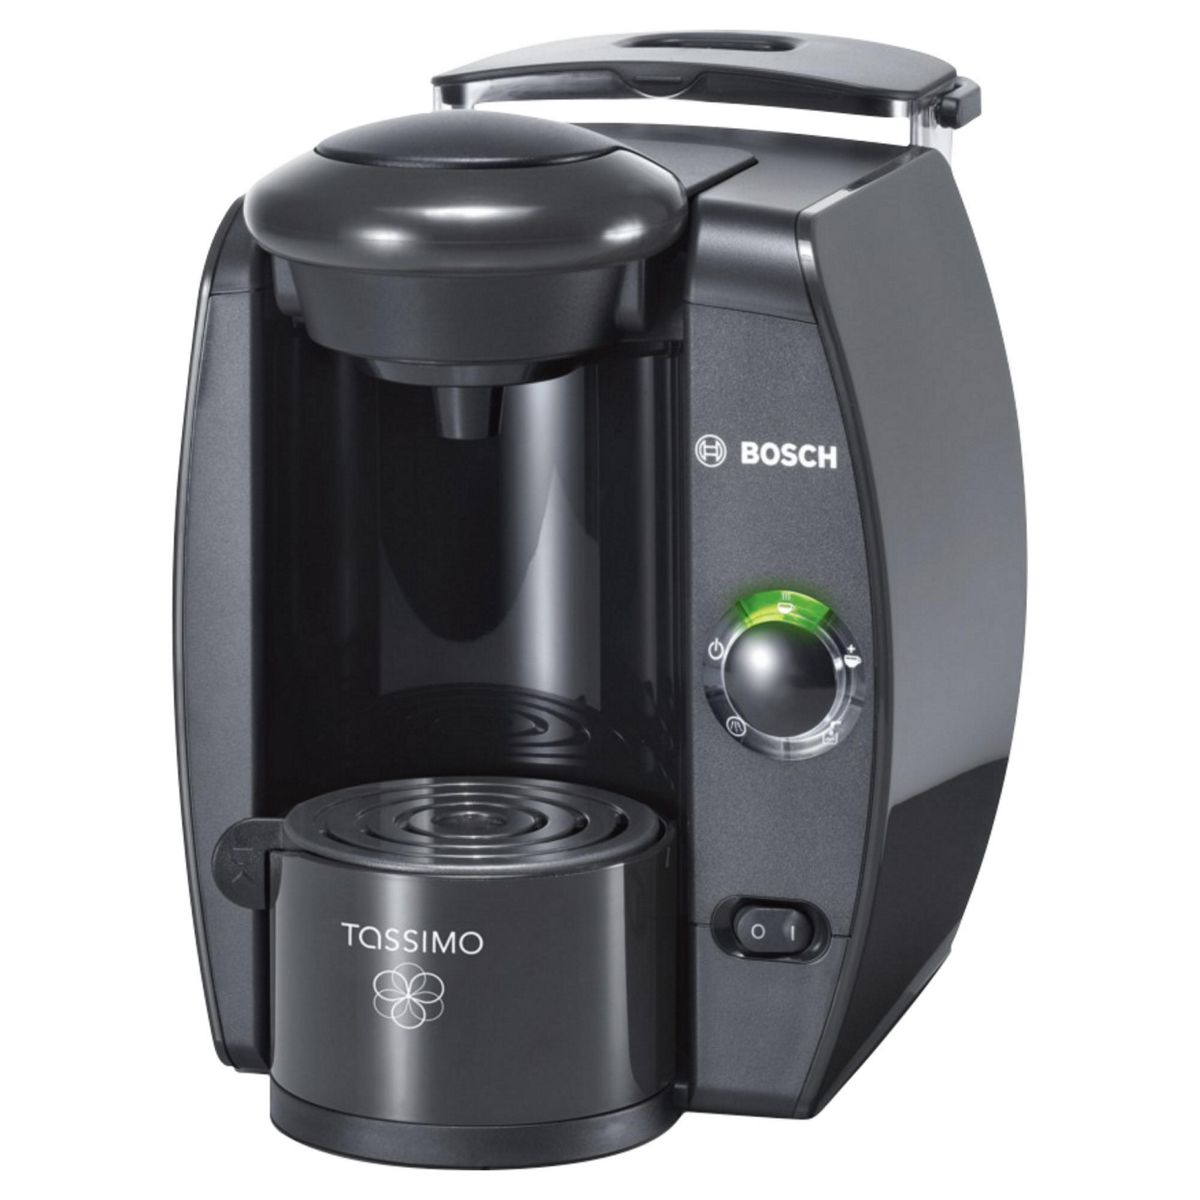 bosch tas4000gb tassimo fidelia t40 coffee pod machine 1300w automatic cleaning 4242002467443 ebay. Black Bedroom Furniture Sets. Home Design Ideas